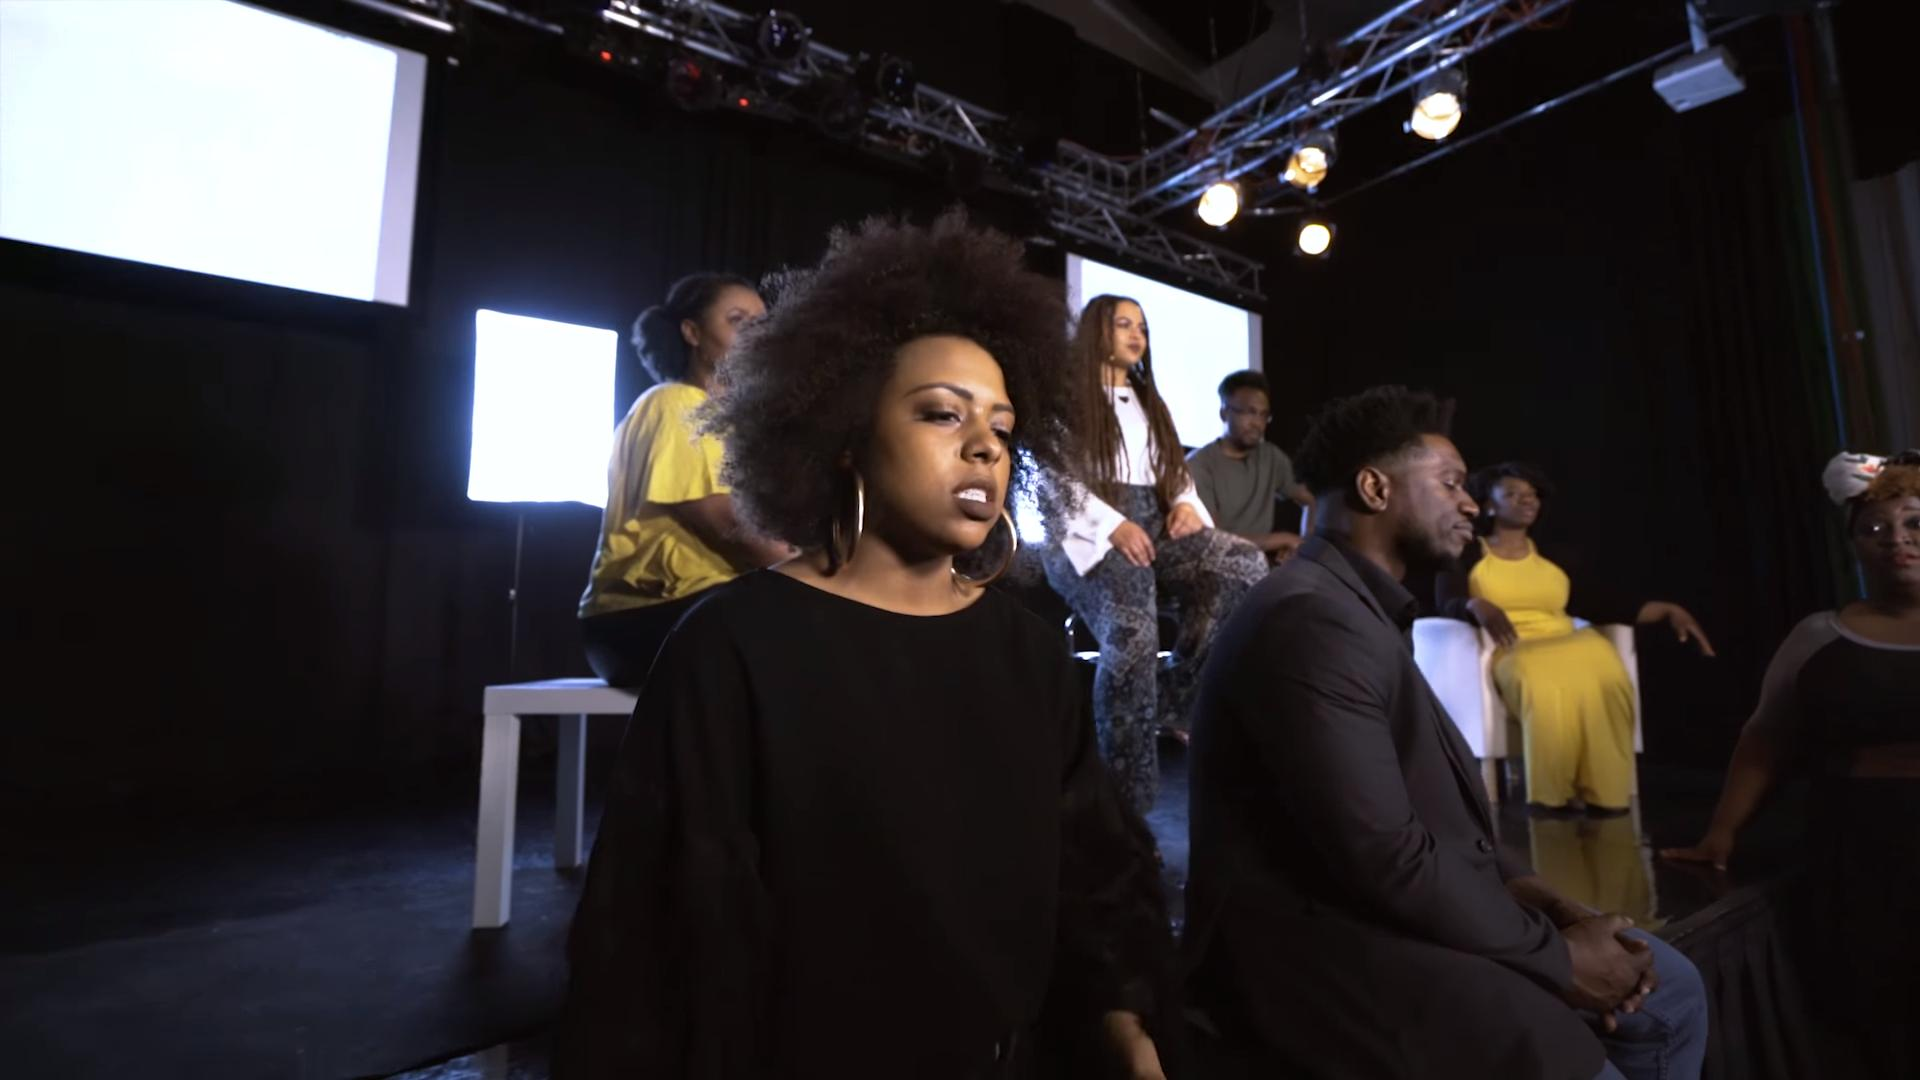 Yahosh Bonner and Friends - This Is Me